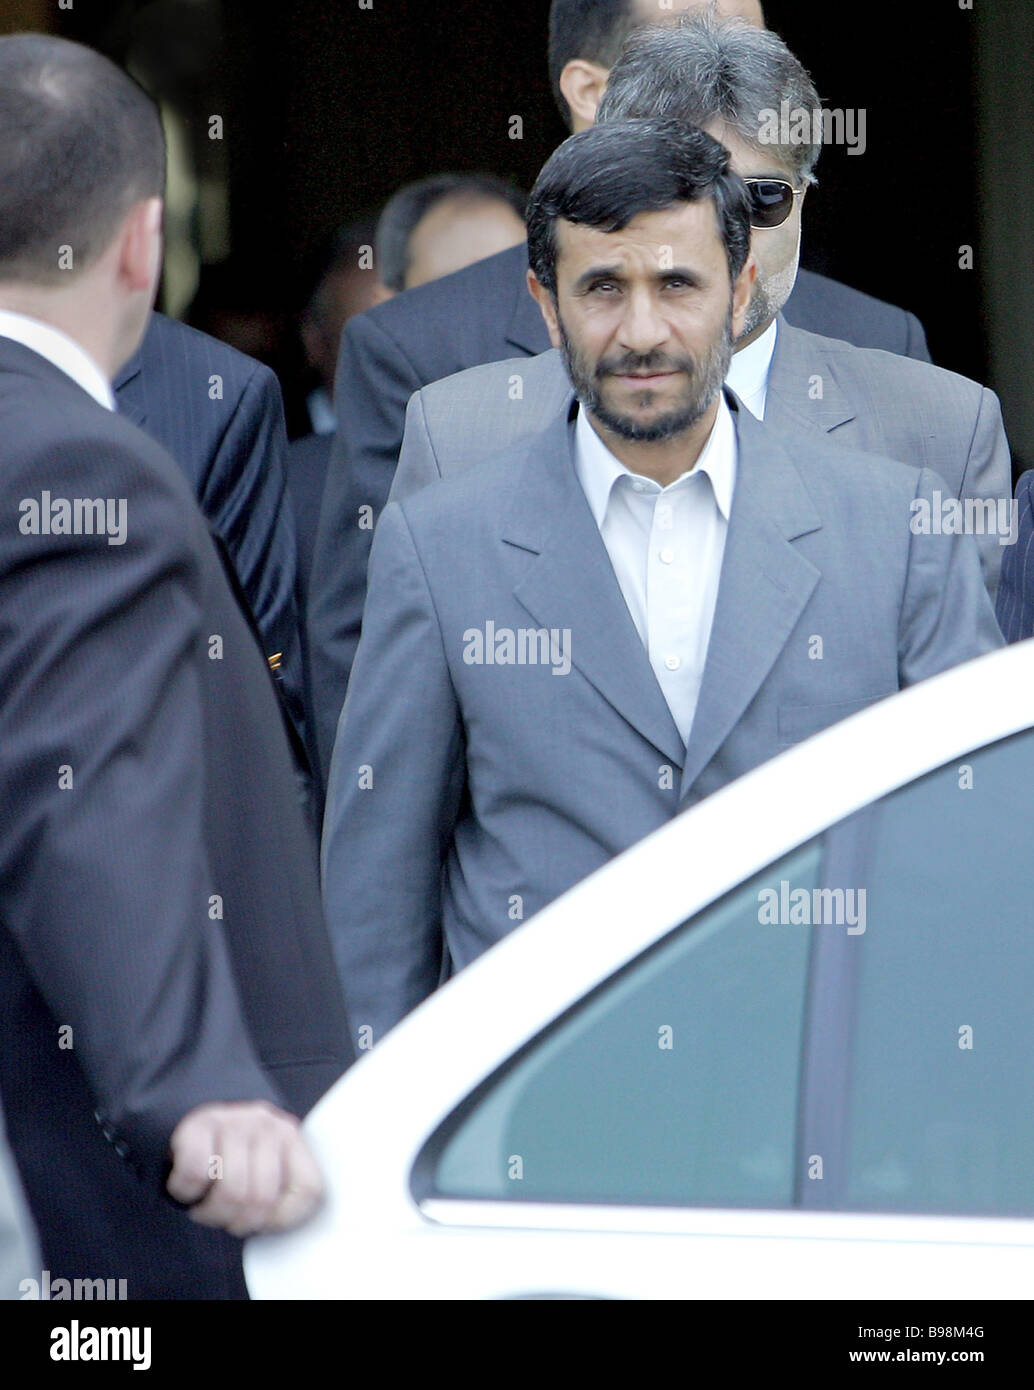 President Mahmoud Ahmadinejad of Iran arrives in Minsk for an official visit - Stock Image